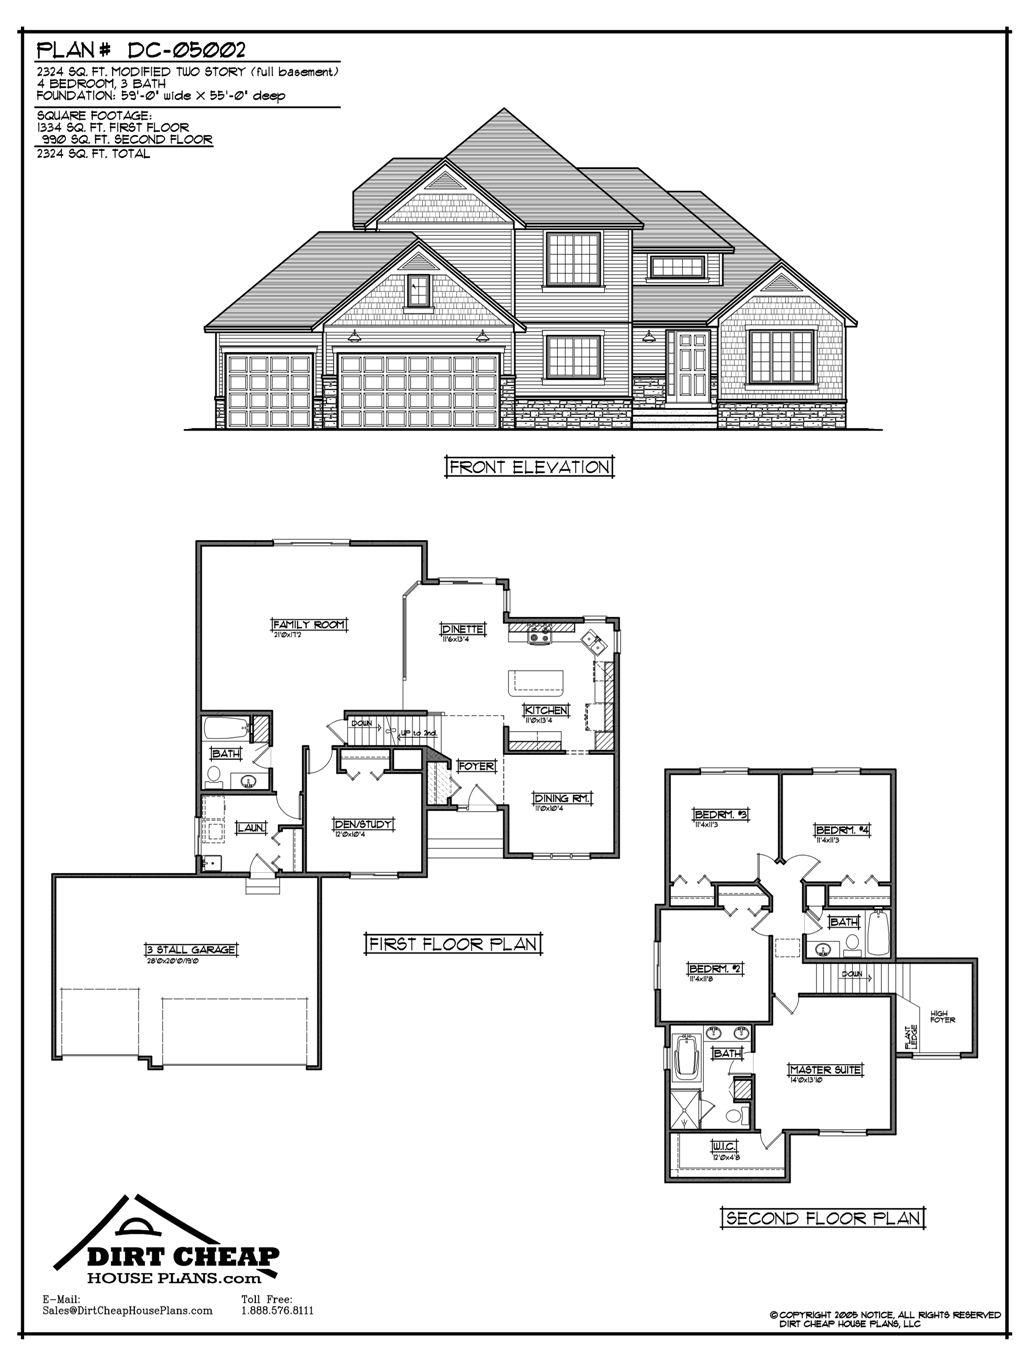 two story house plans with basement inexpensive two story house plans dc 05002 modified two story full basement home design 5007